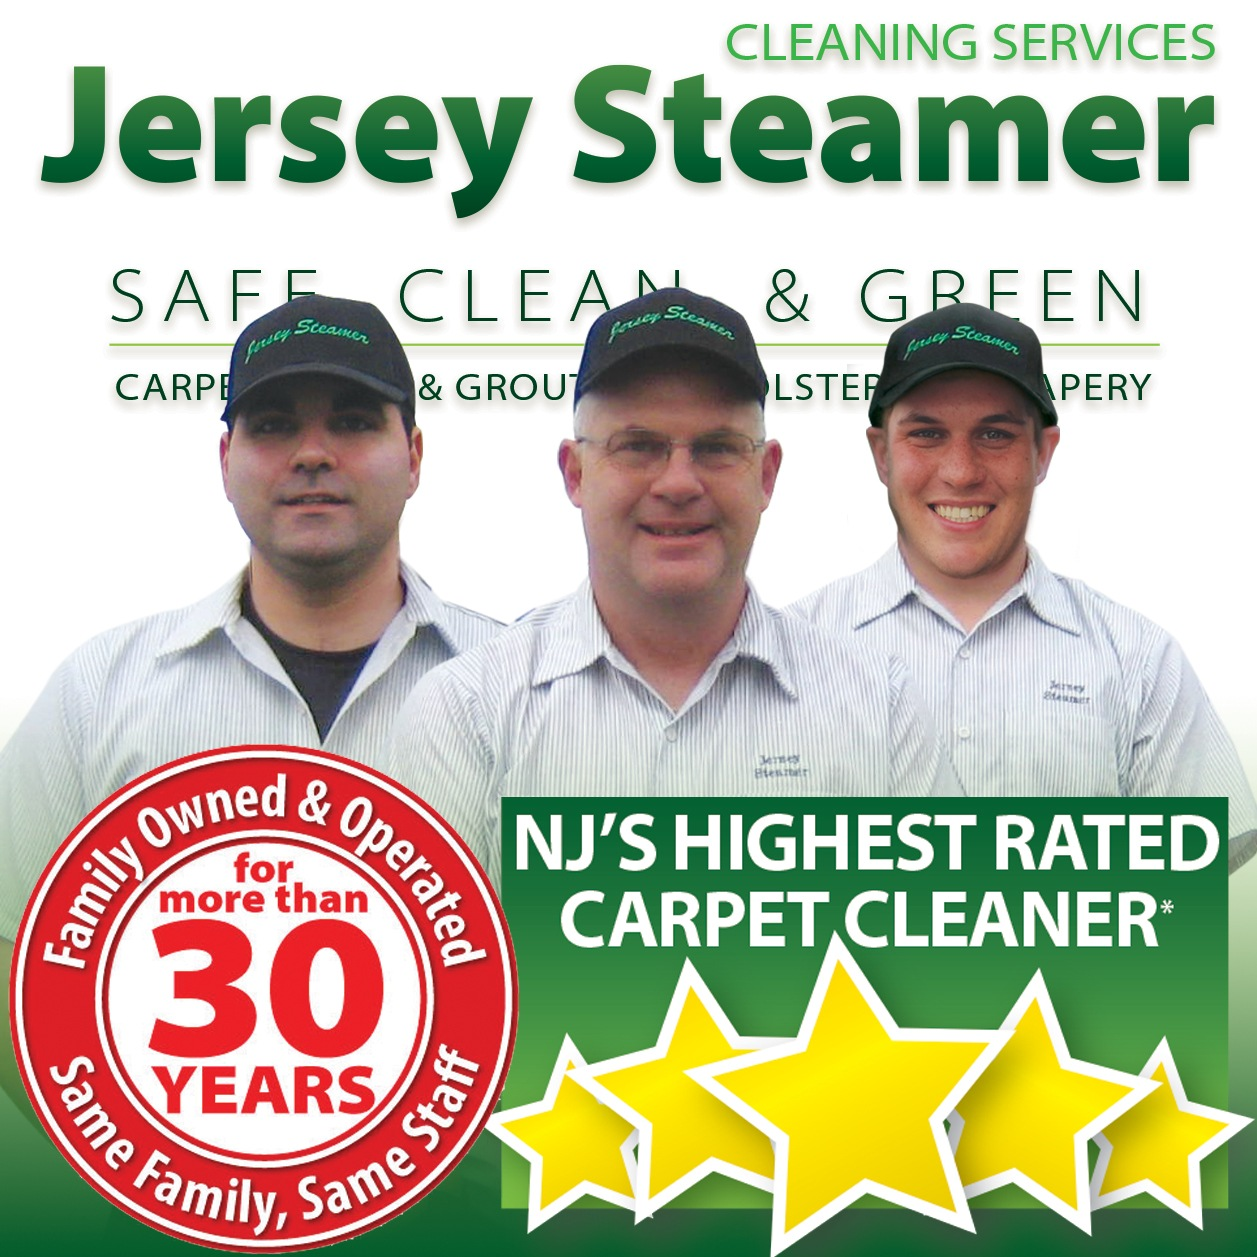 Steam Cleaning Services near me in Neptune, NJ 07753